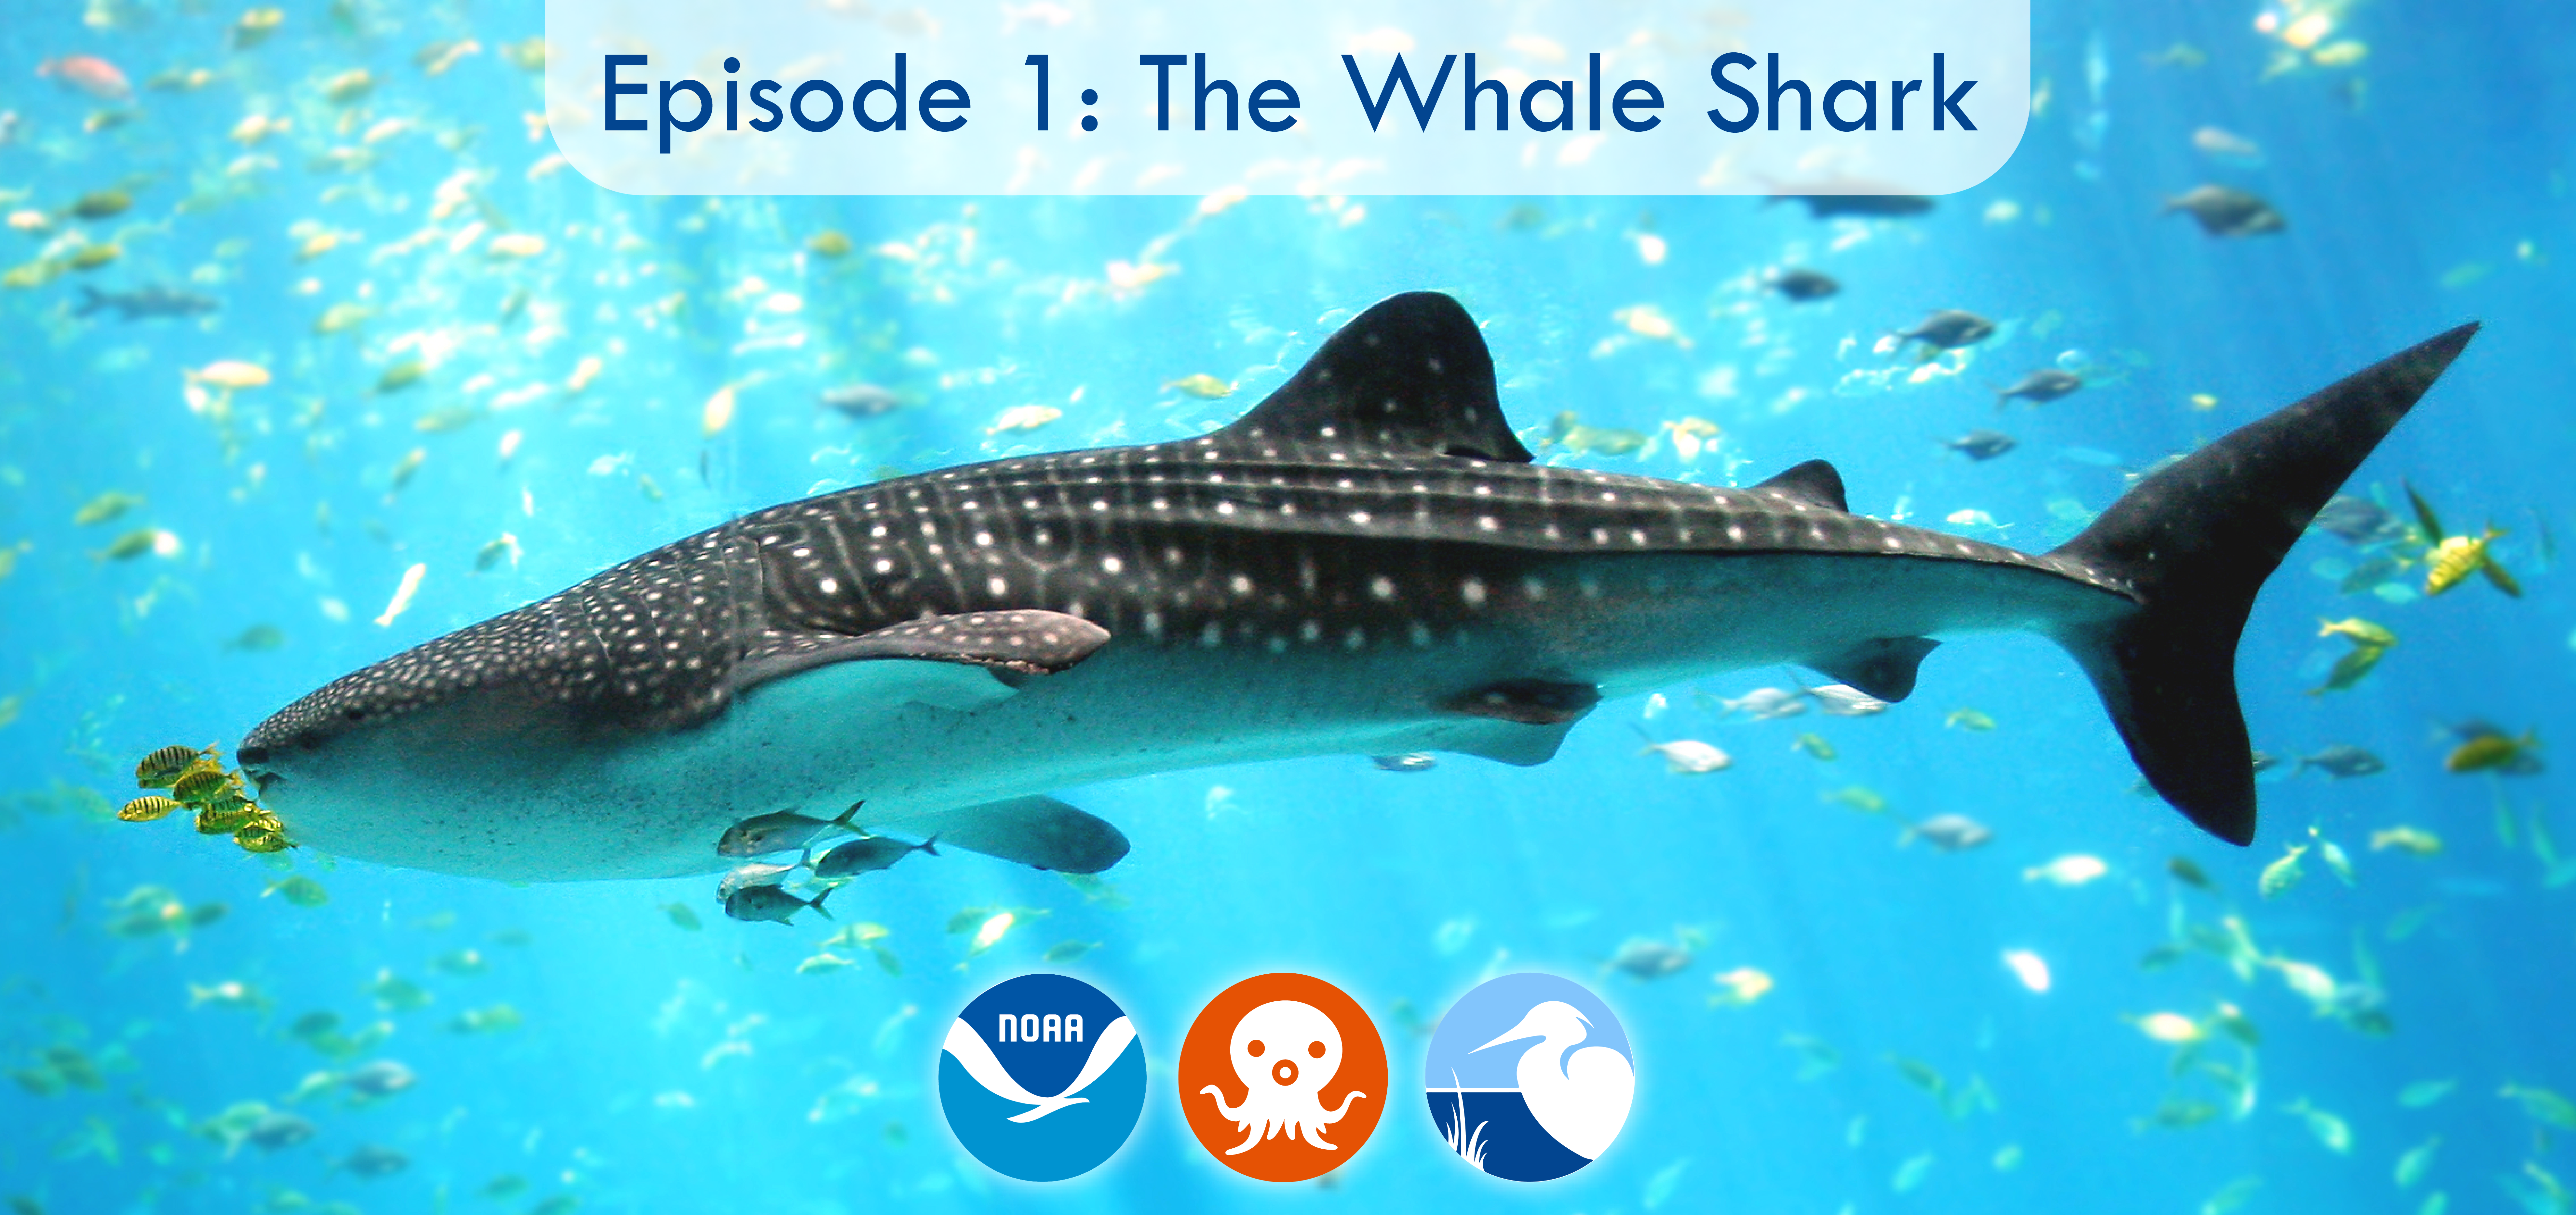 Episode 1: The Whale Shark Educators from the Aquarium of the Pacific answer our questions about the Octonauts' adventure with a whale shark and teach us how to help protect whale sharks in real life.